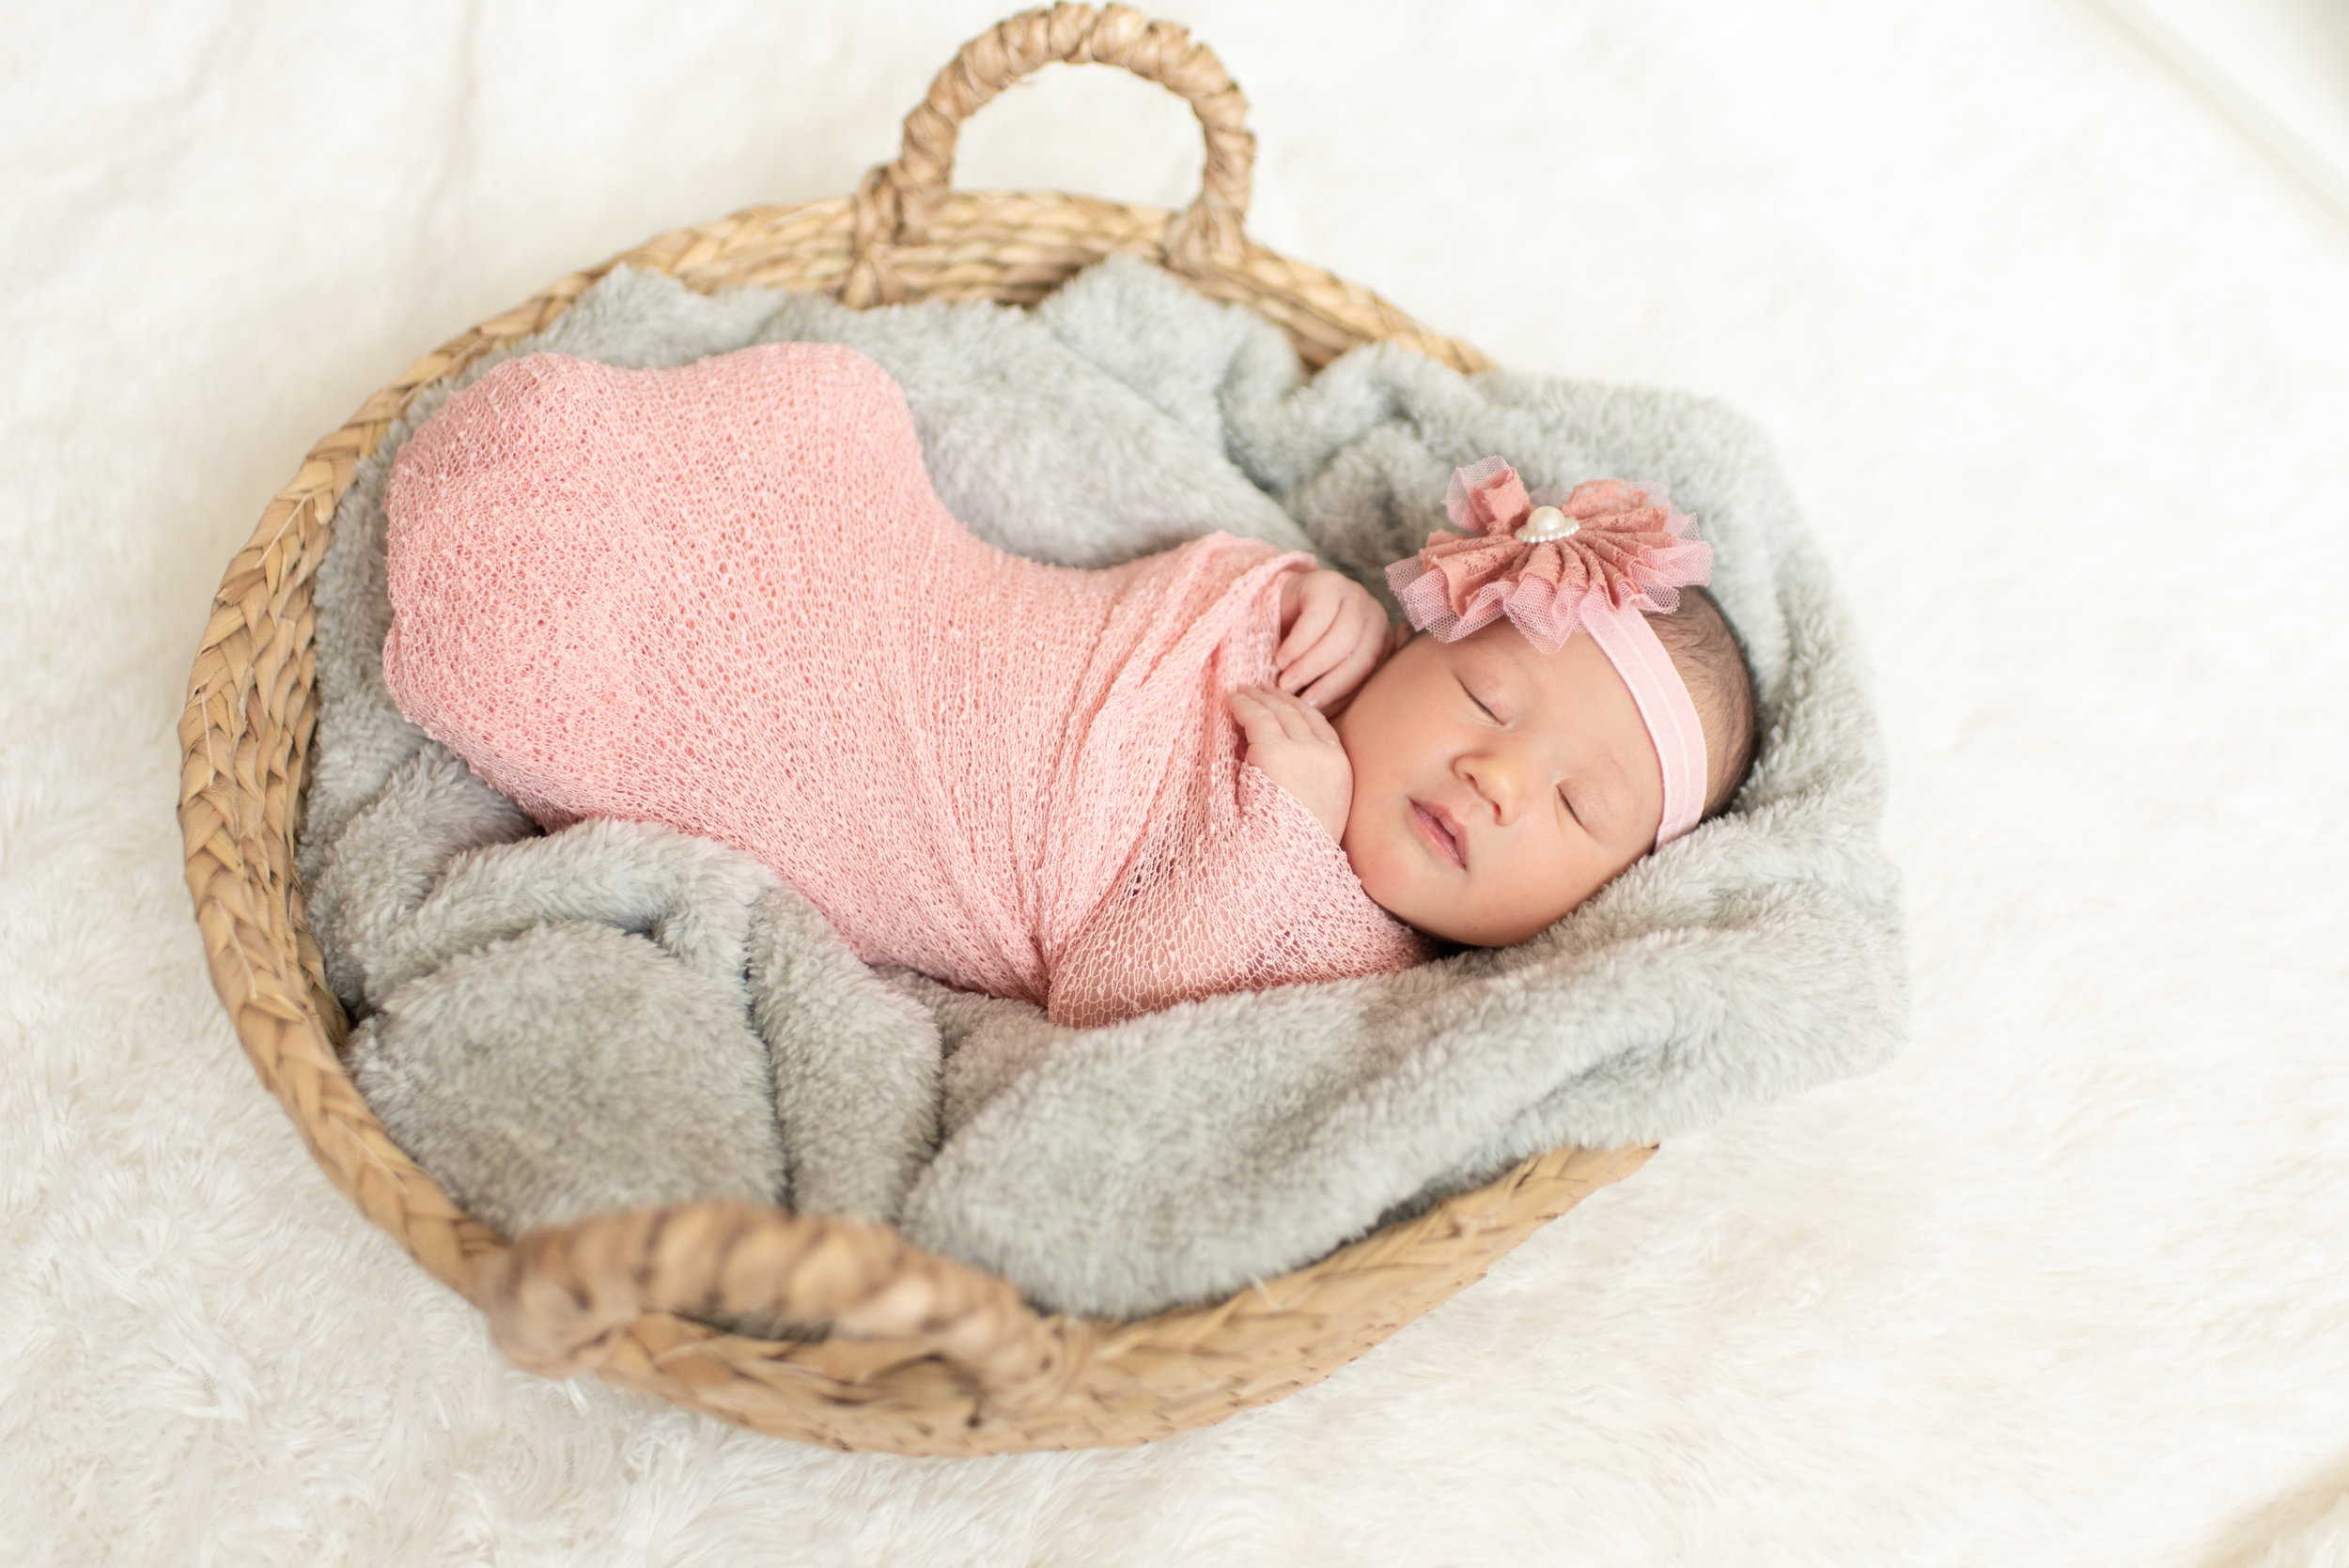 Walman Newborn Session (15 of 80).jpg